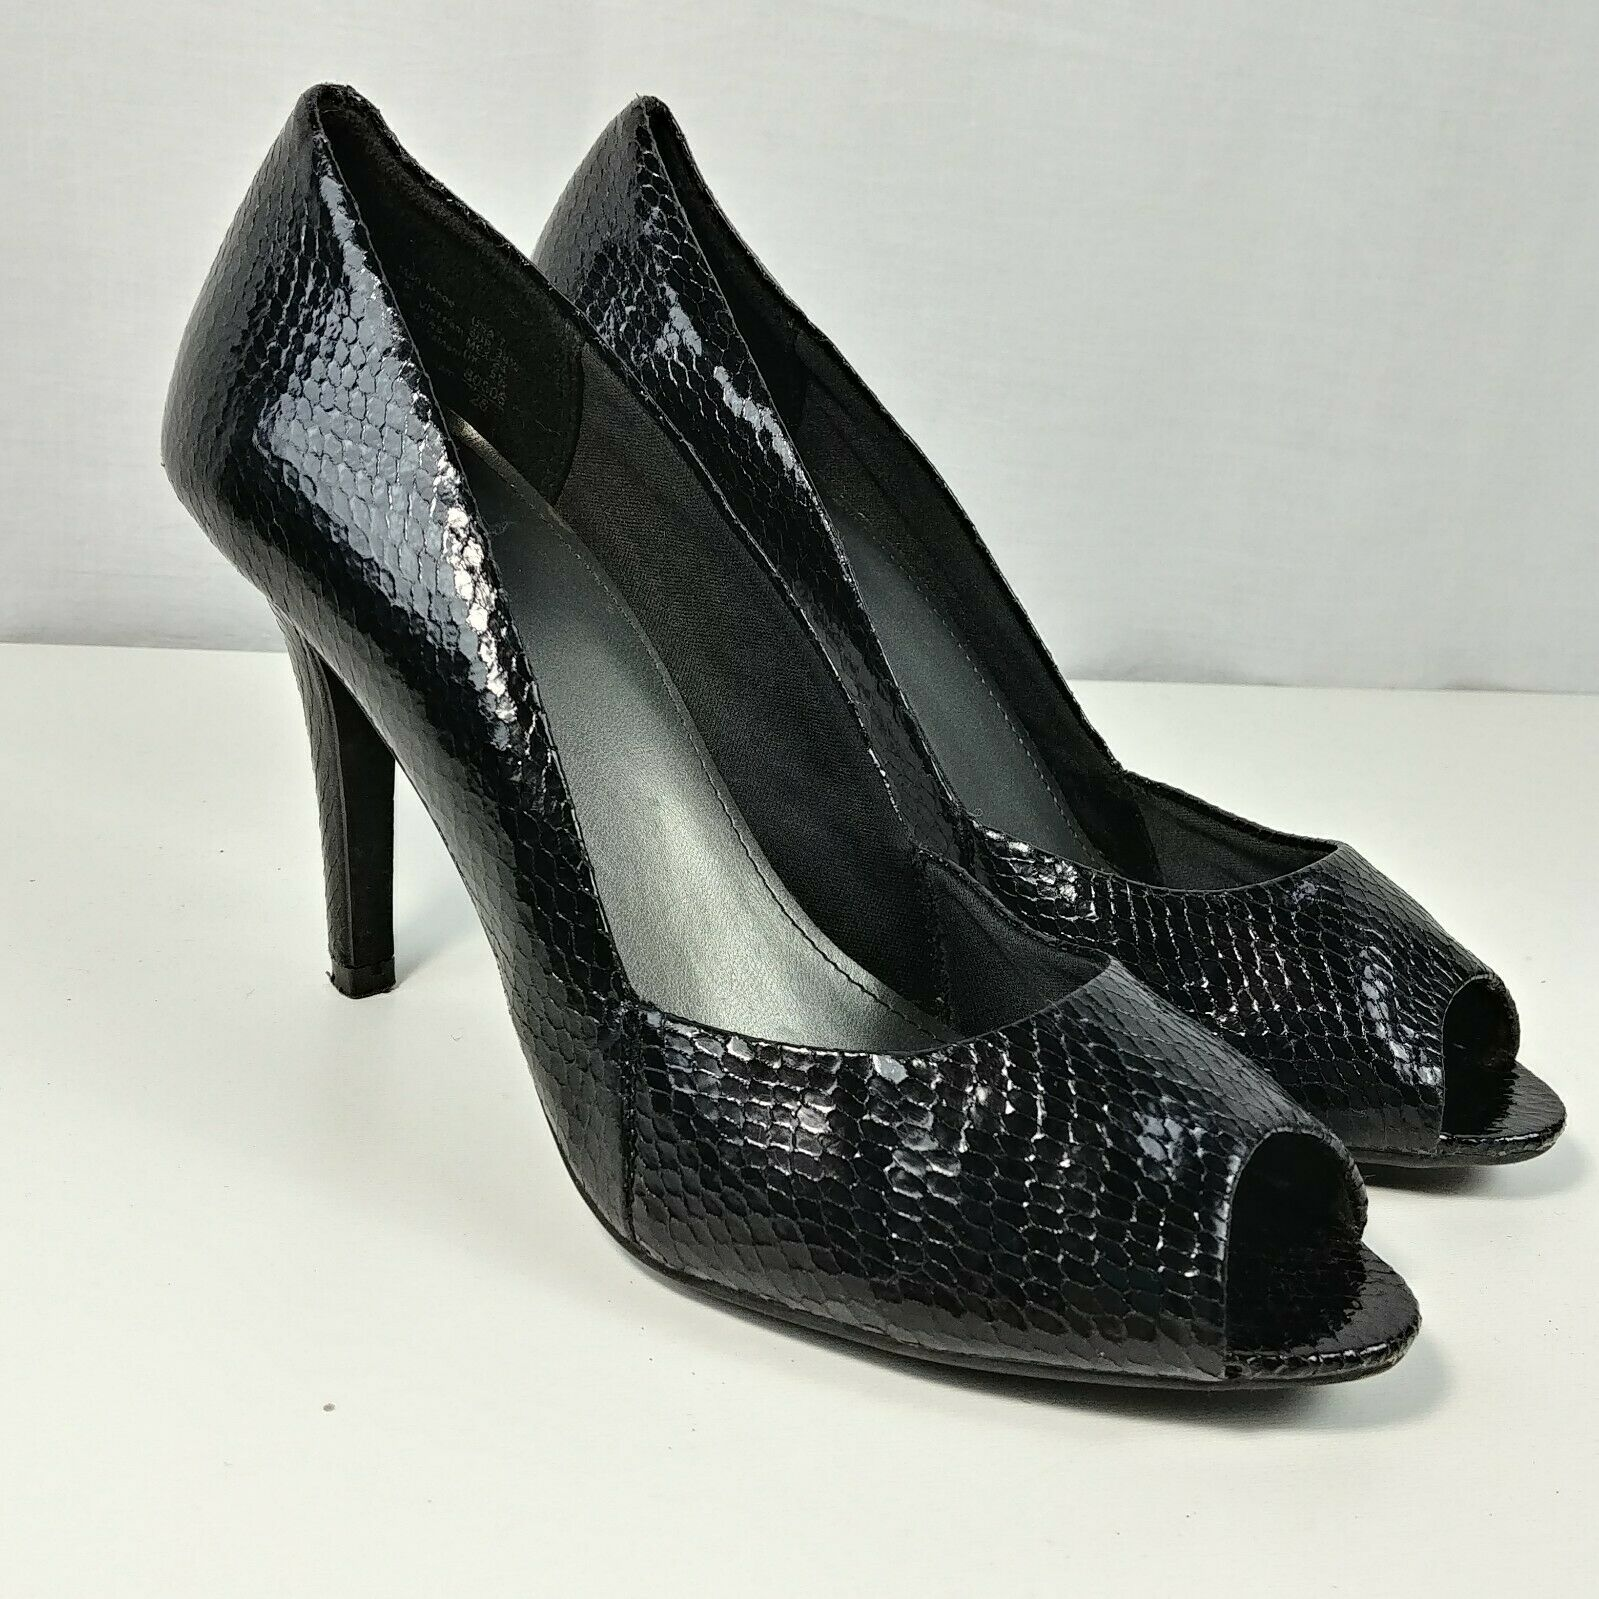 dd4810f7c0 Fioni Black Faux Snake Peep Toe Hi Heels Pumps Shoes US Size 7 Heel 3.5″